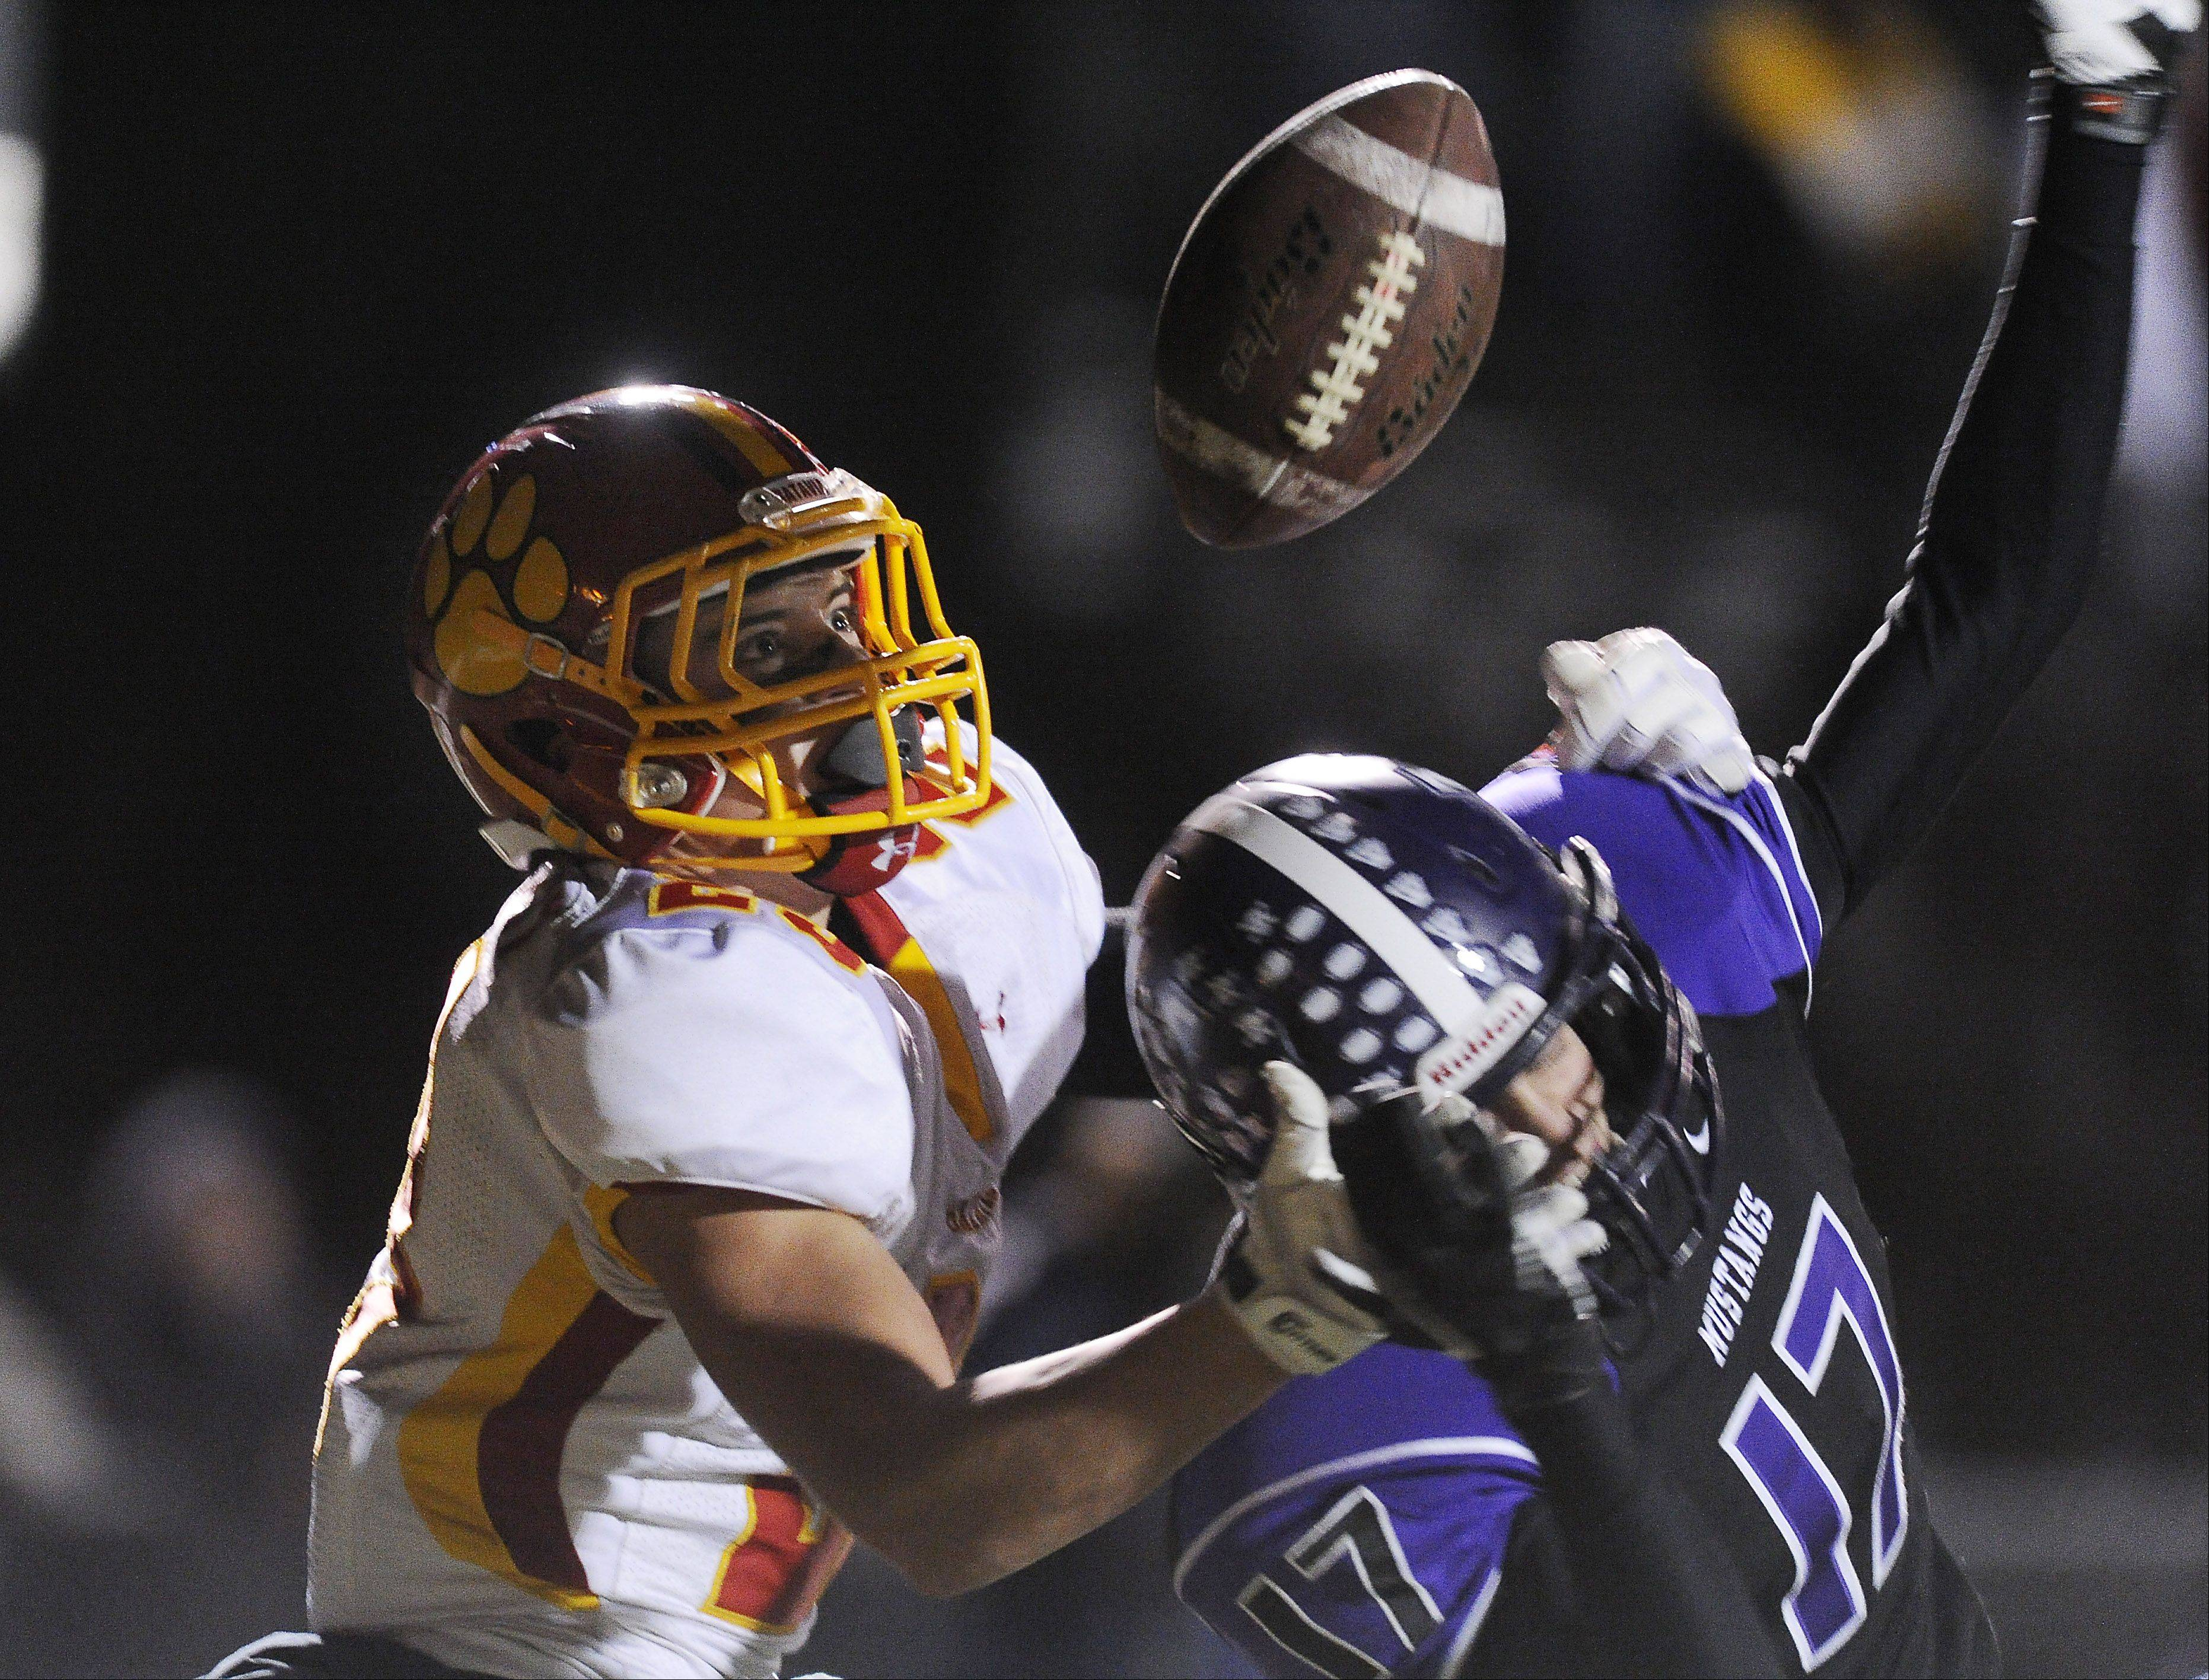 Batavia's Michael Moffatt keeps his eyes on the ball and hauls in a second-quarter touchdown over Rolling Meadows' Kevin Adair.